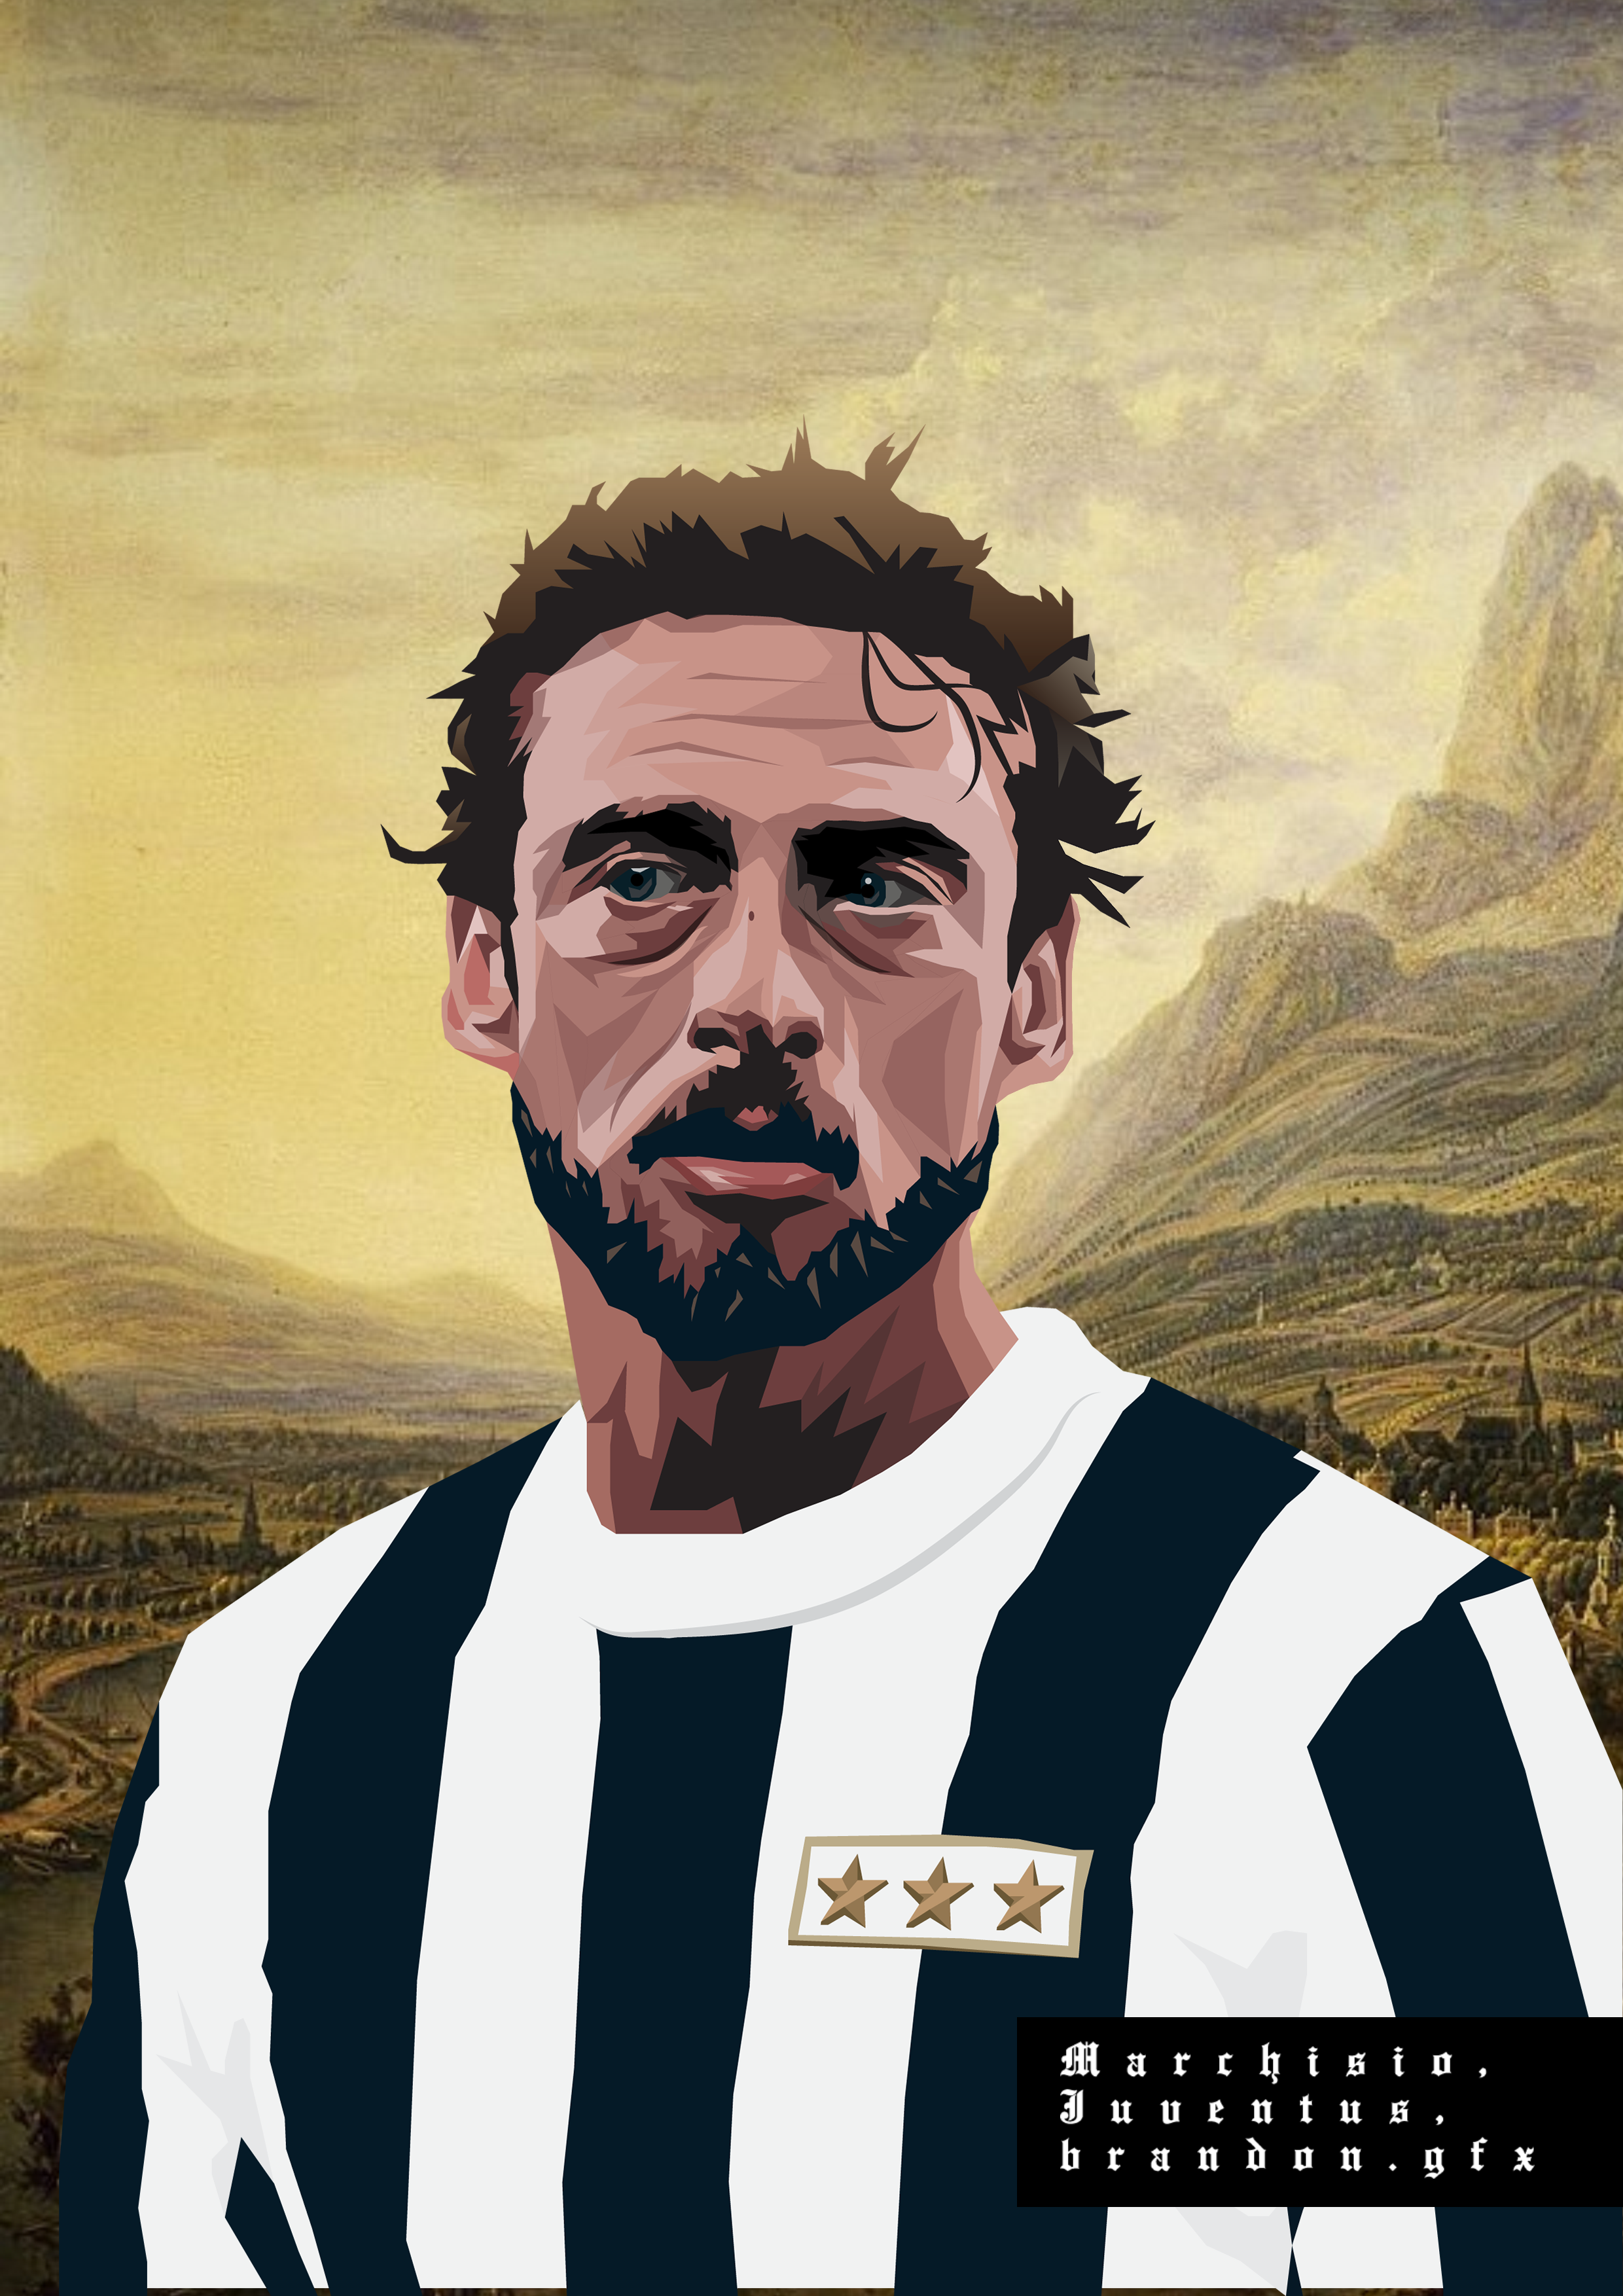 marchisio.png